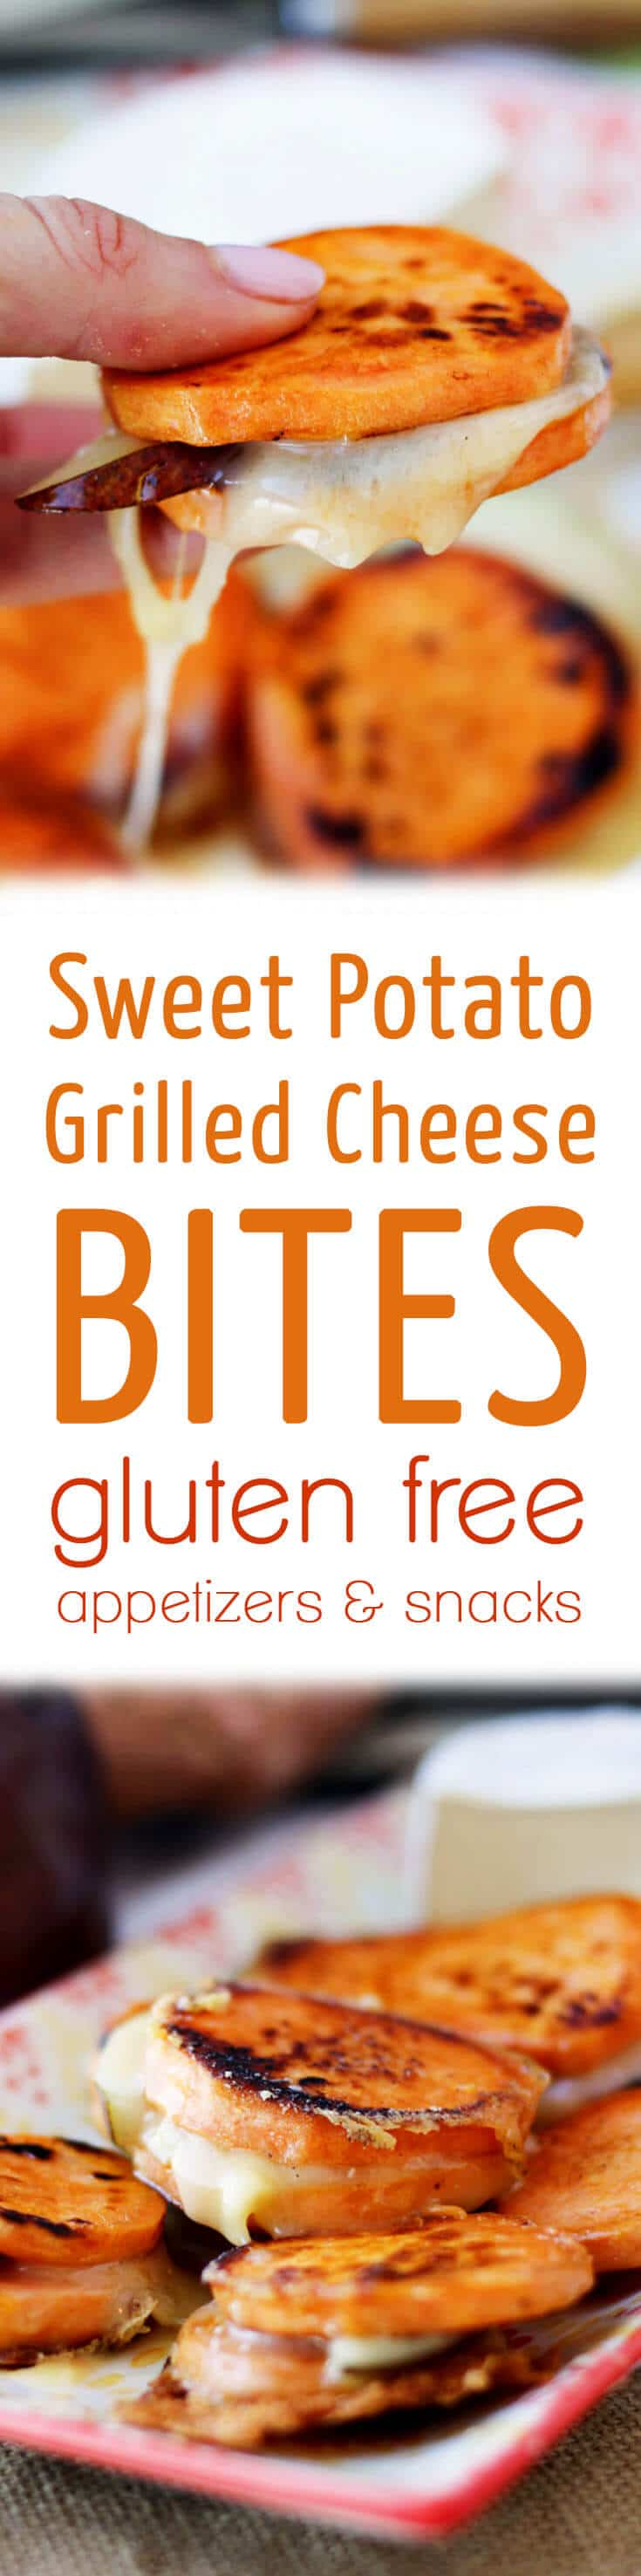 These delicious sweet potato grilled cheese bites are easy no bread gluten free appetizers that your guests, friends and family will totally love.